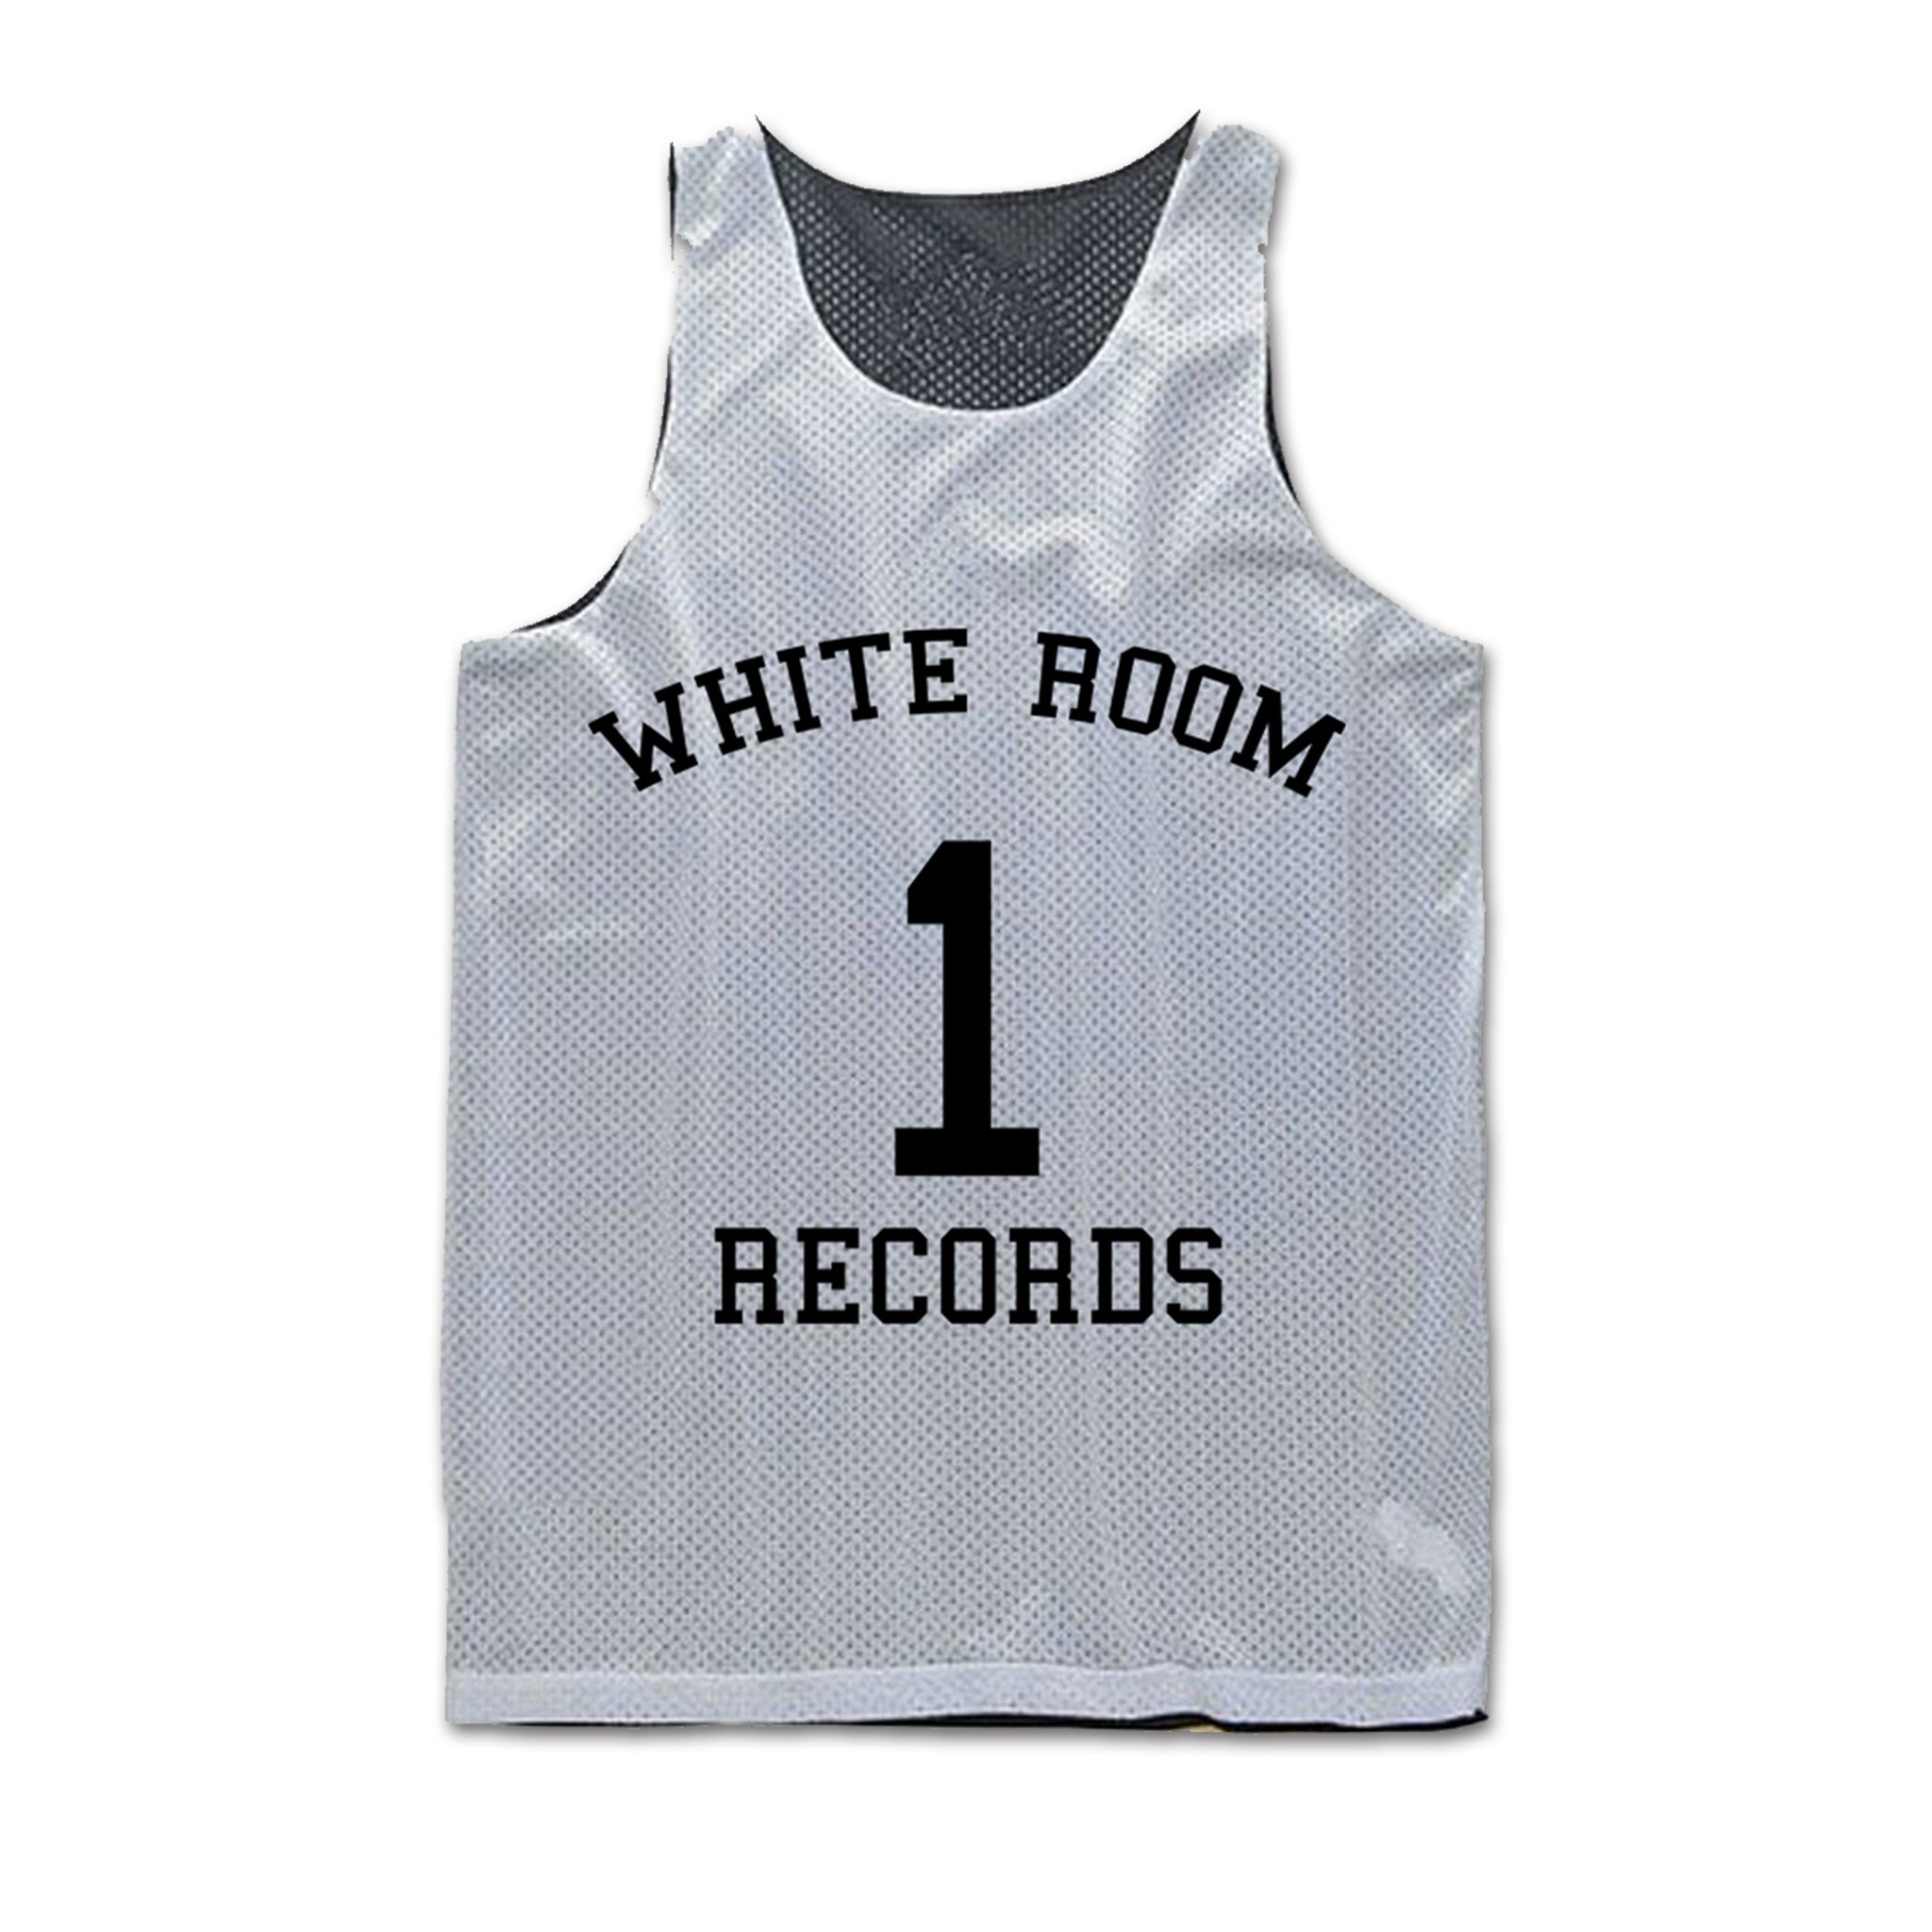 Reversible Basketball Jersey (Limited Edition)